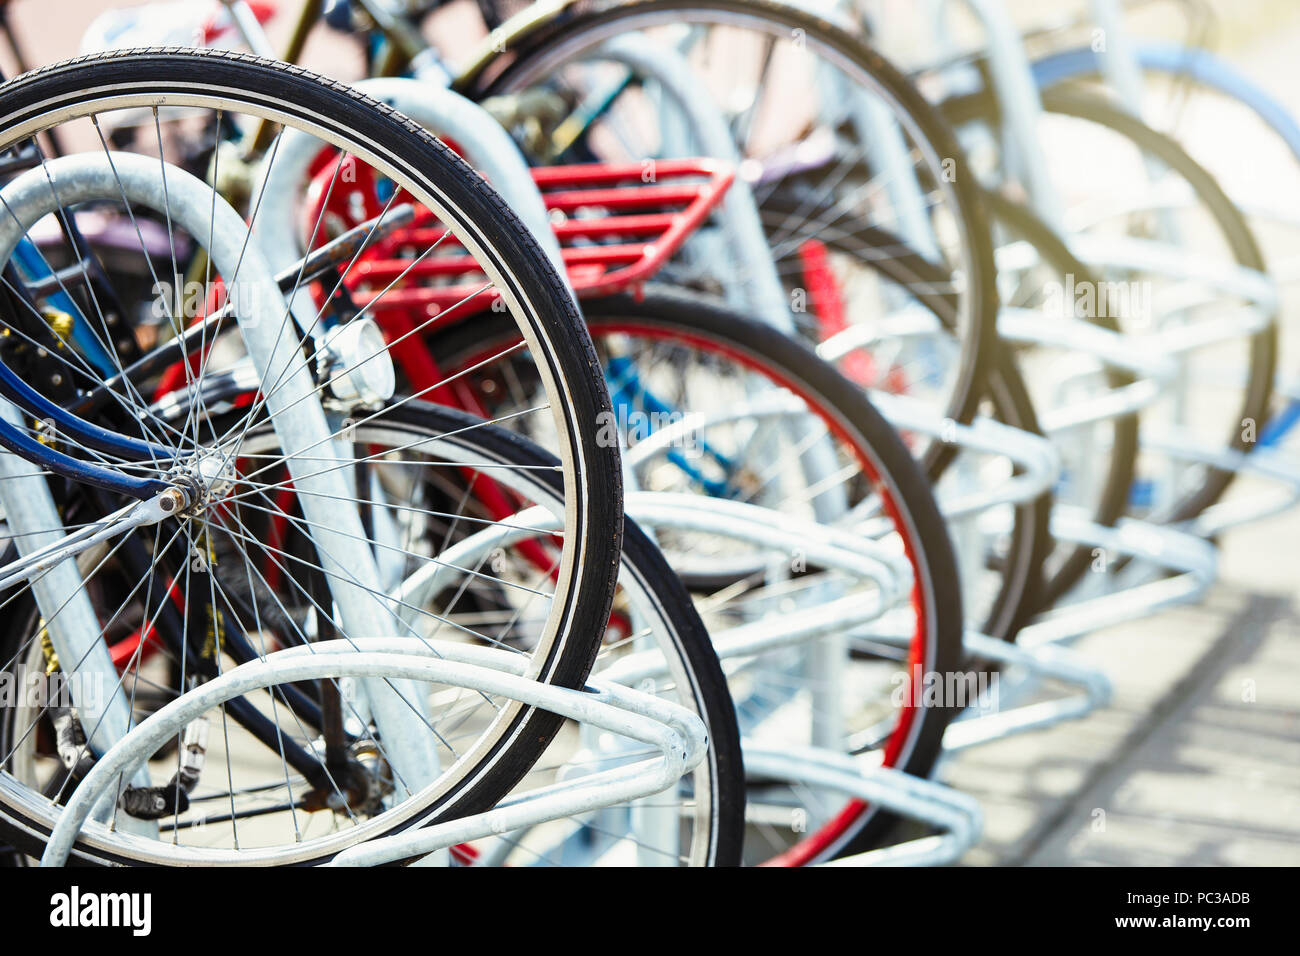 Many Different Bicycles Parked On A Parking Lot In The Urban Street Bike Wheels Locked